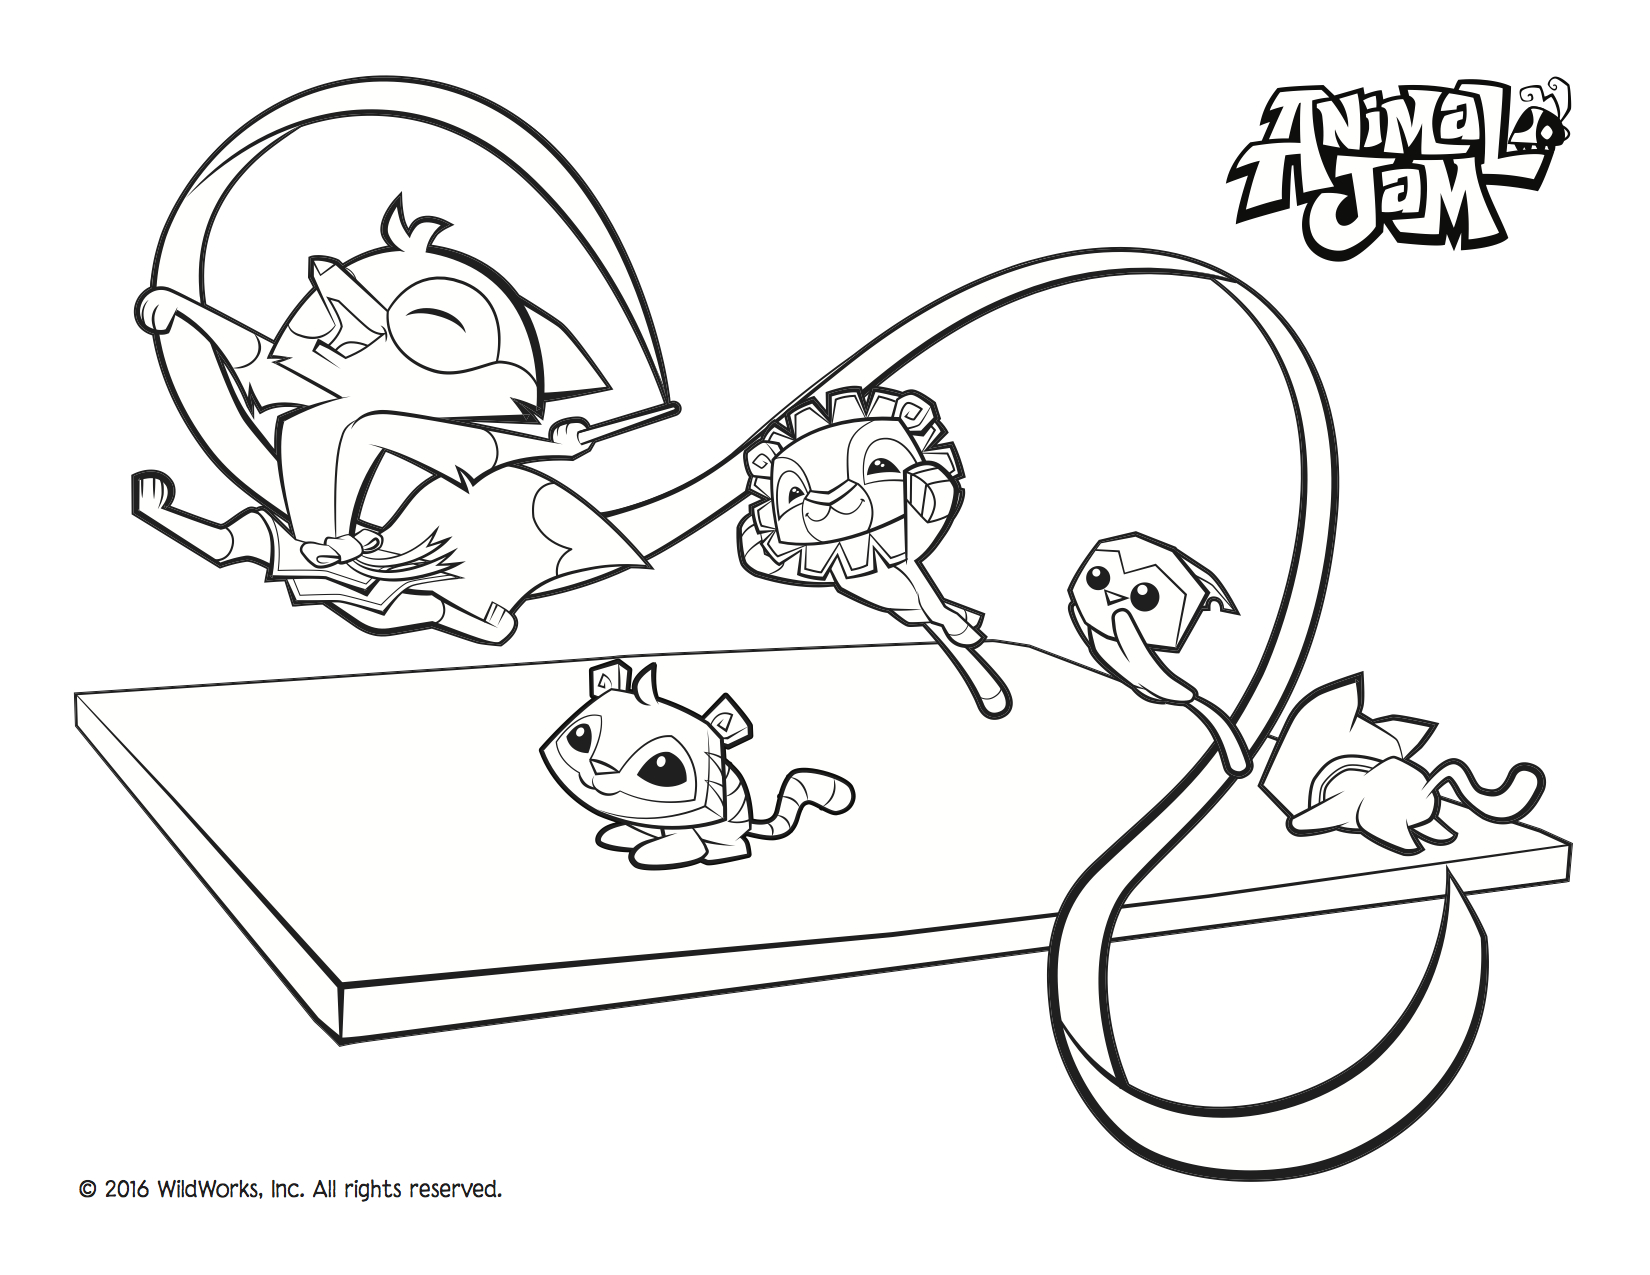 Animal Jam Coloring Pages at GetDrawings.com | Free for ...